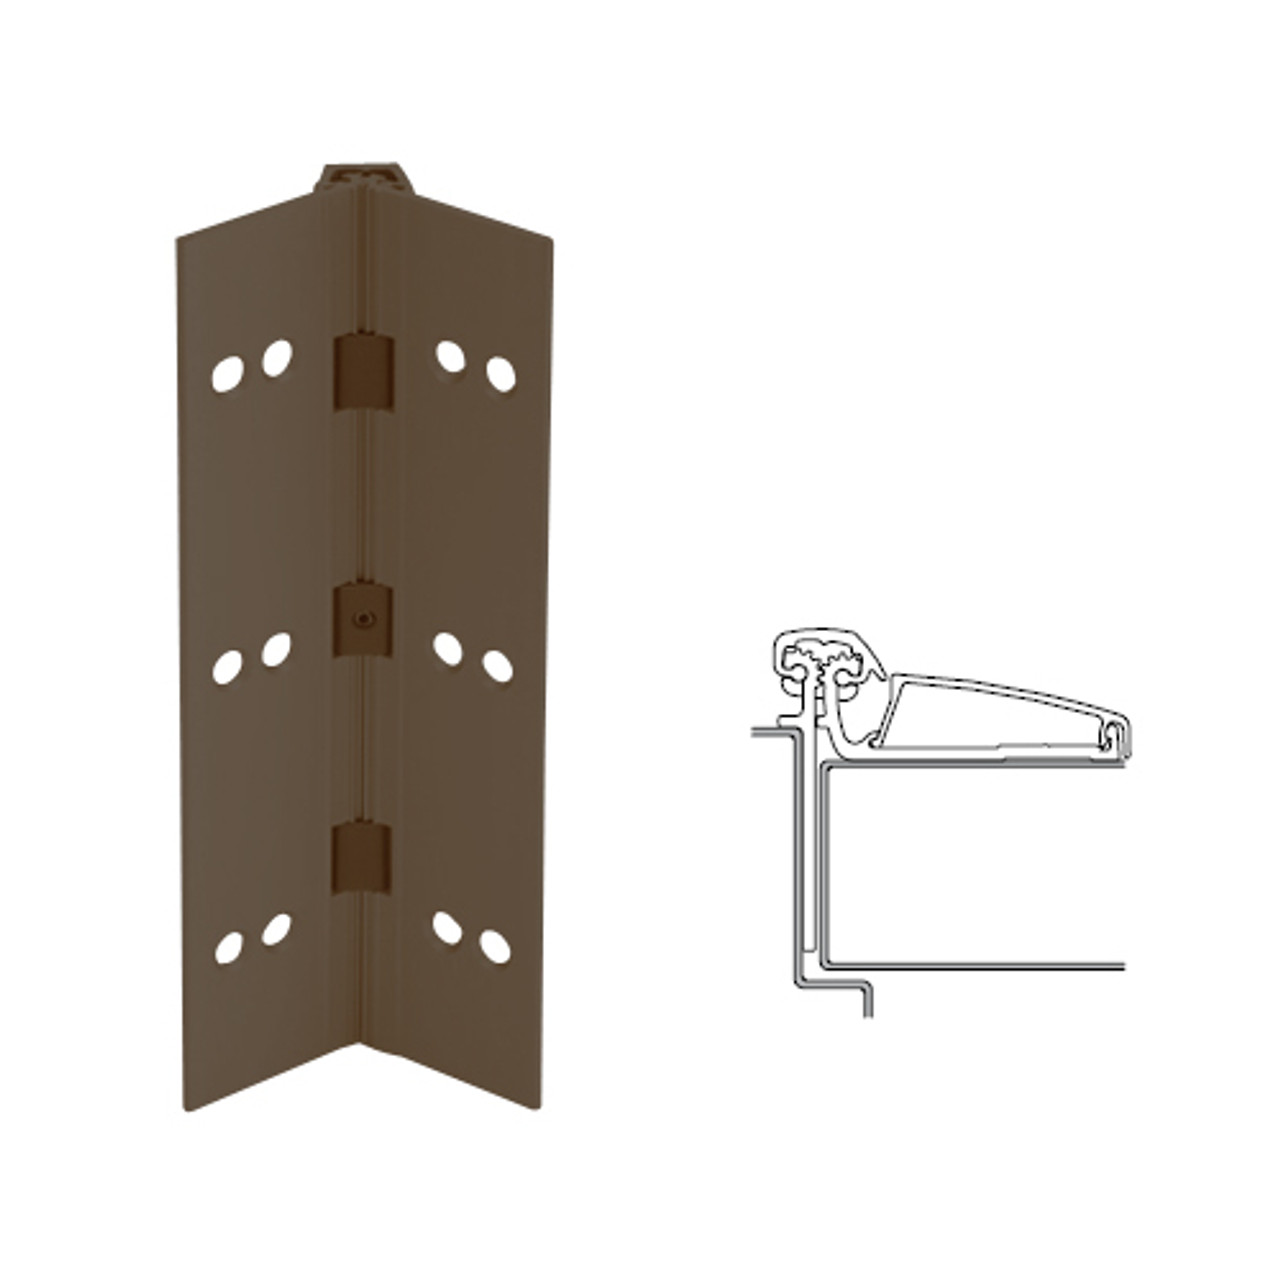 046XY-313AN-120-SECWDWD IVES Adjustable Half Surface Continuous Geared Hinges with Security Screws - Hex Pin Drive in Dark Bronze Anodized